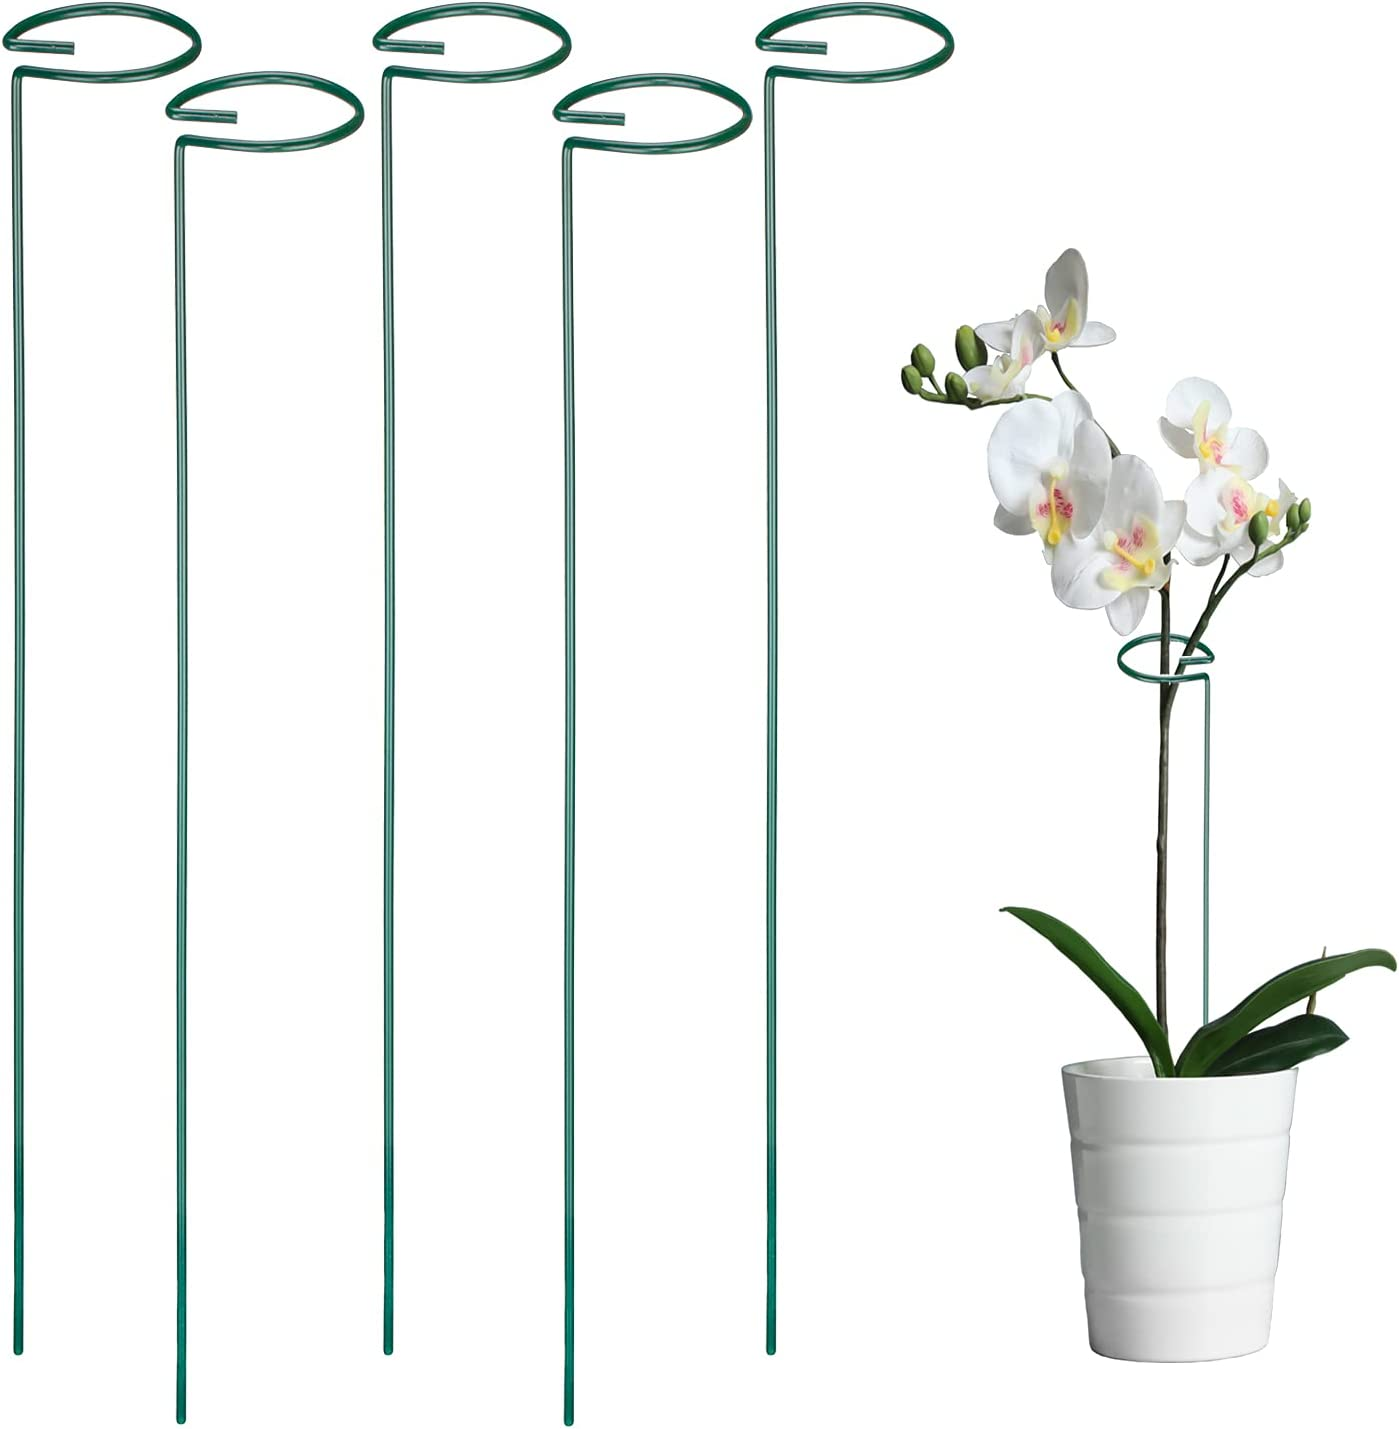 POLIUMB Plant Support Stakes,Metal Garden Flower Support Plant Support Stakes,Single Stem Plant Stakes Flower Support Rings for Flowers, Orchid, Peony, Lily, Rose (17 Inches-5 Pack)